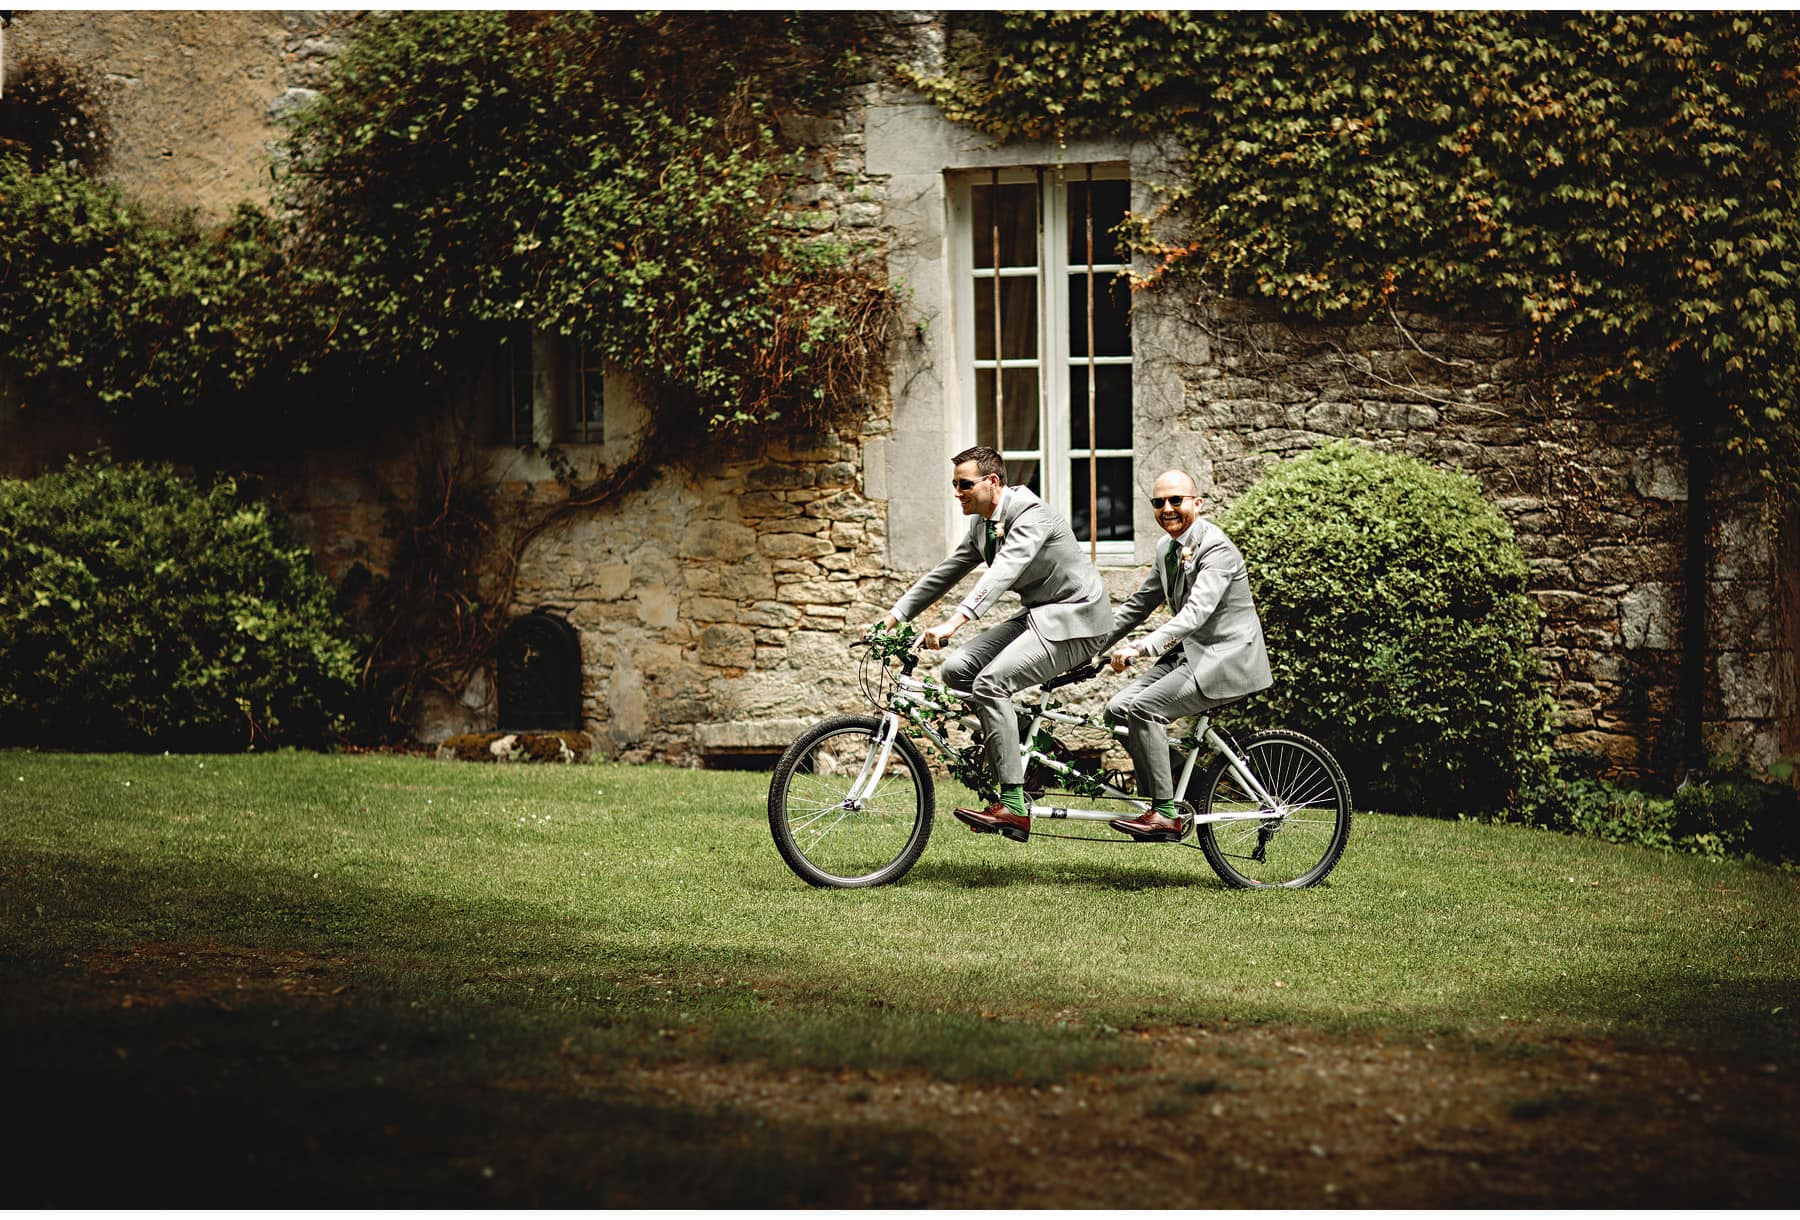 the groom & best man arriving on a tandem bicycle